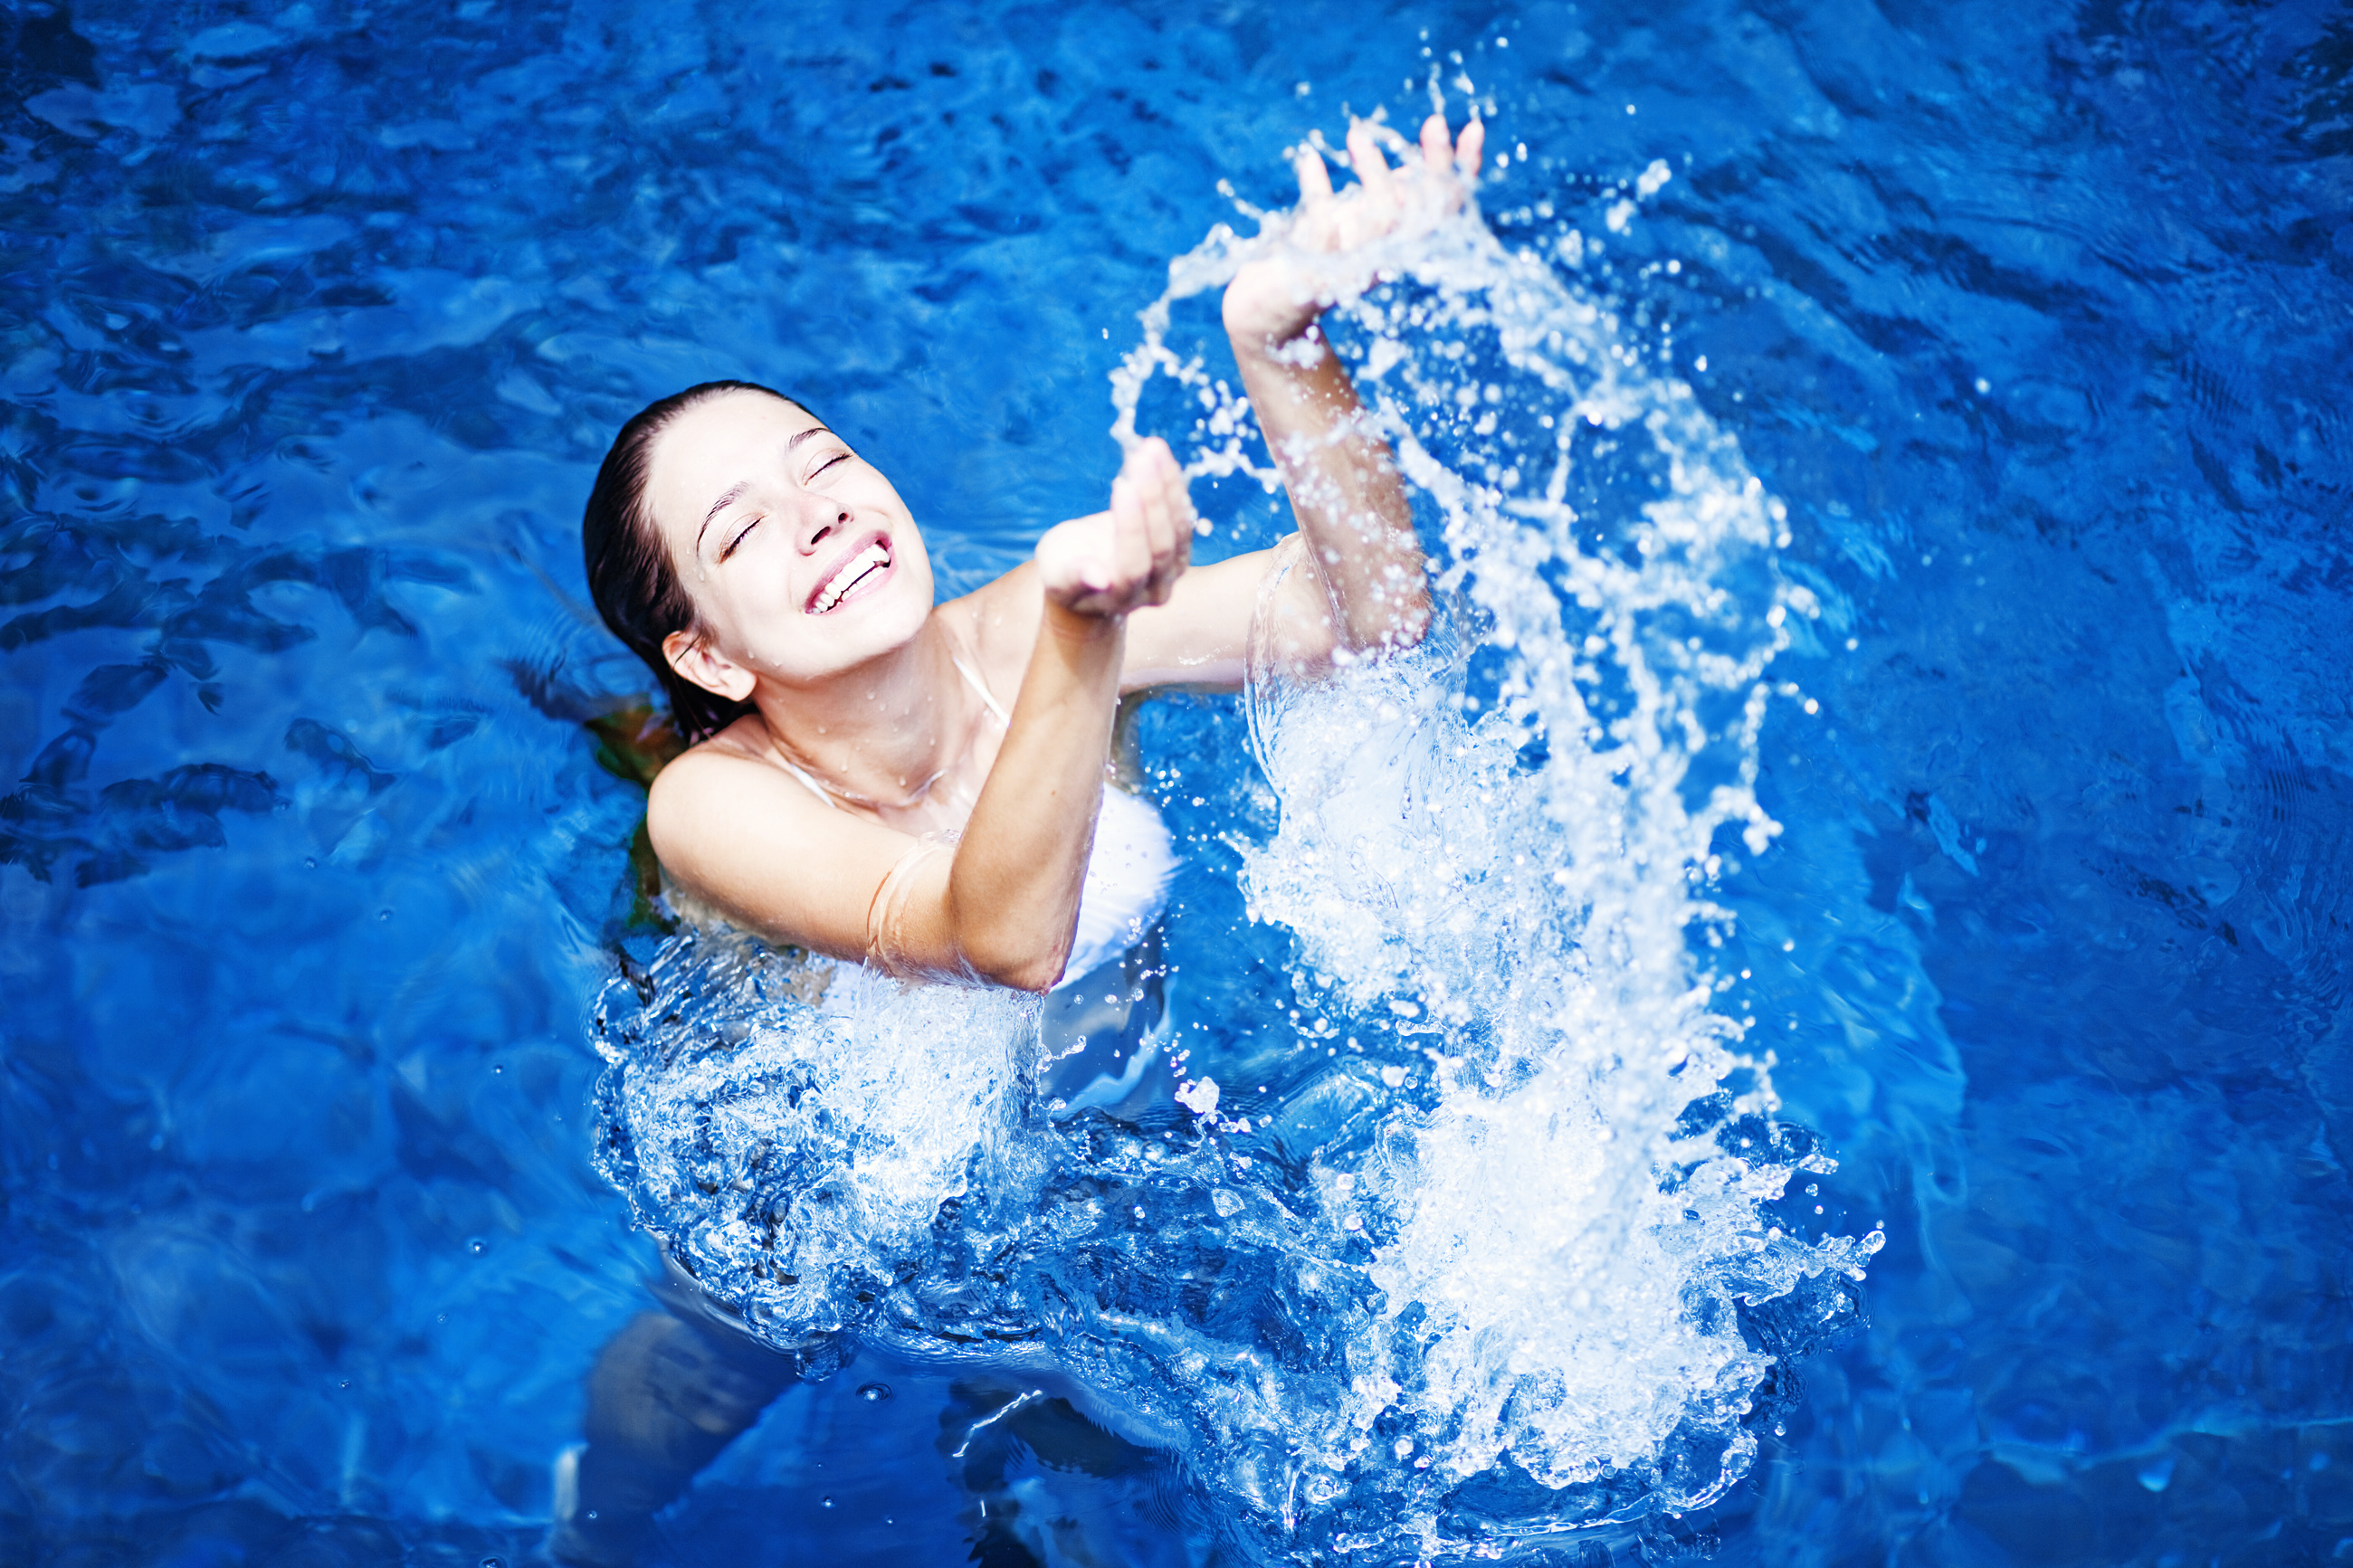 Woman splashing in pool